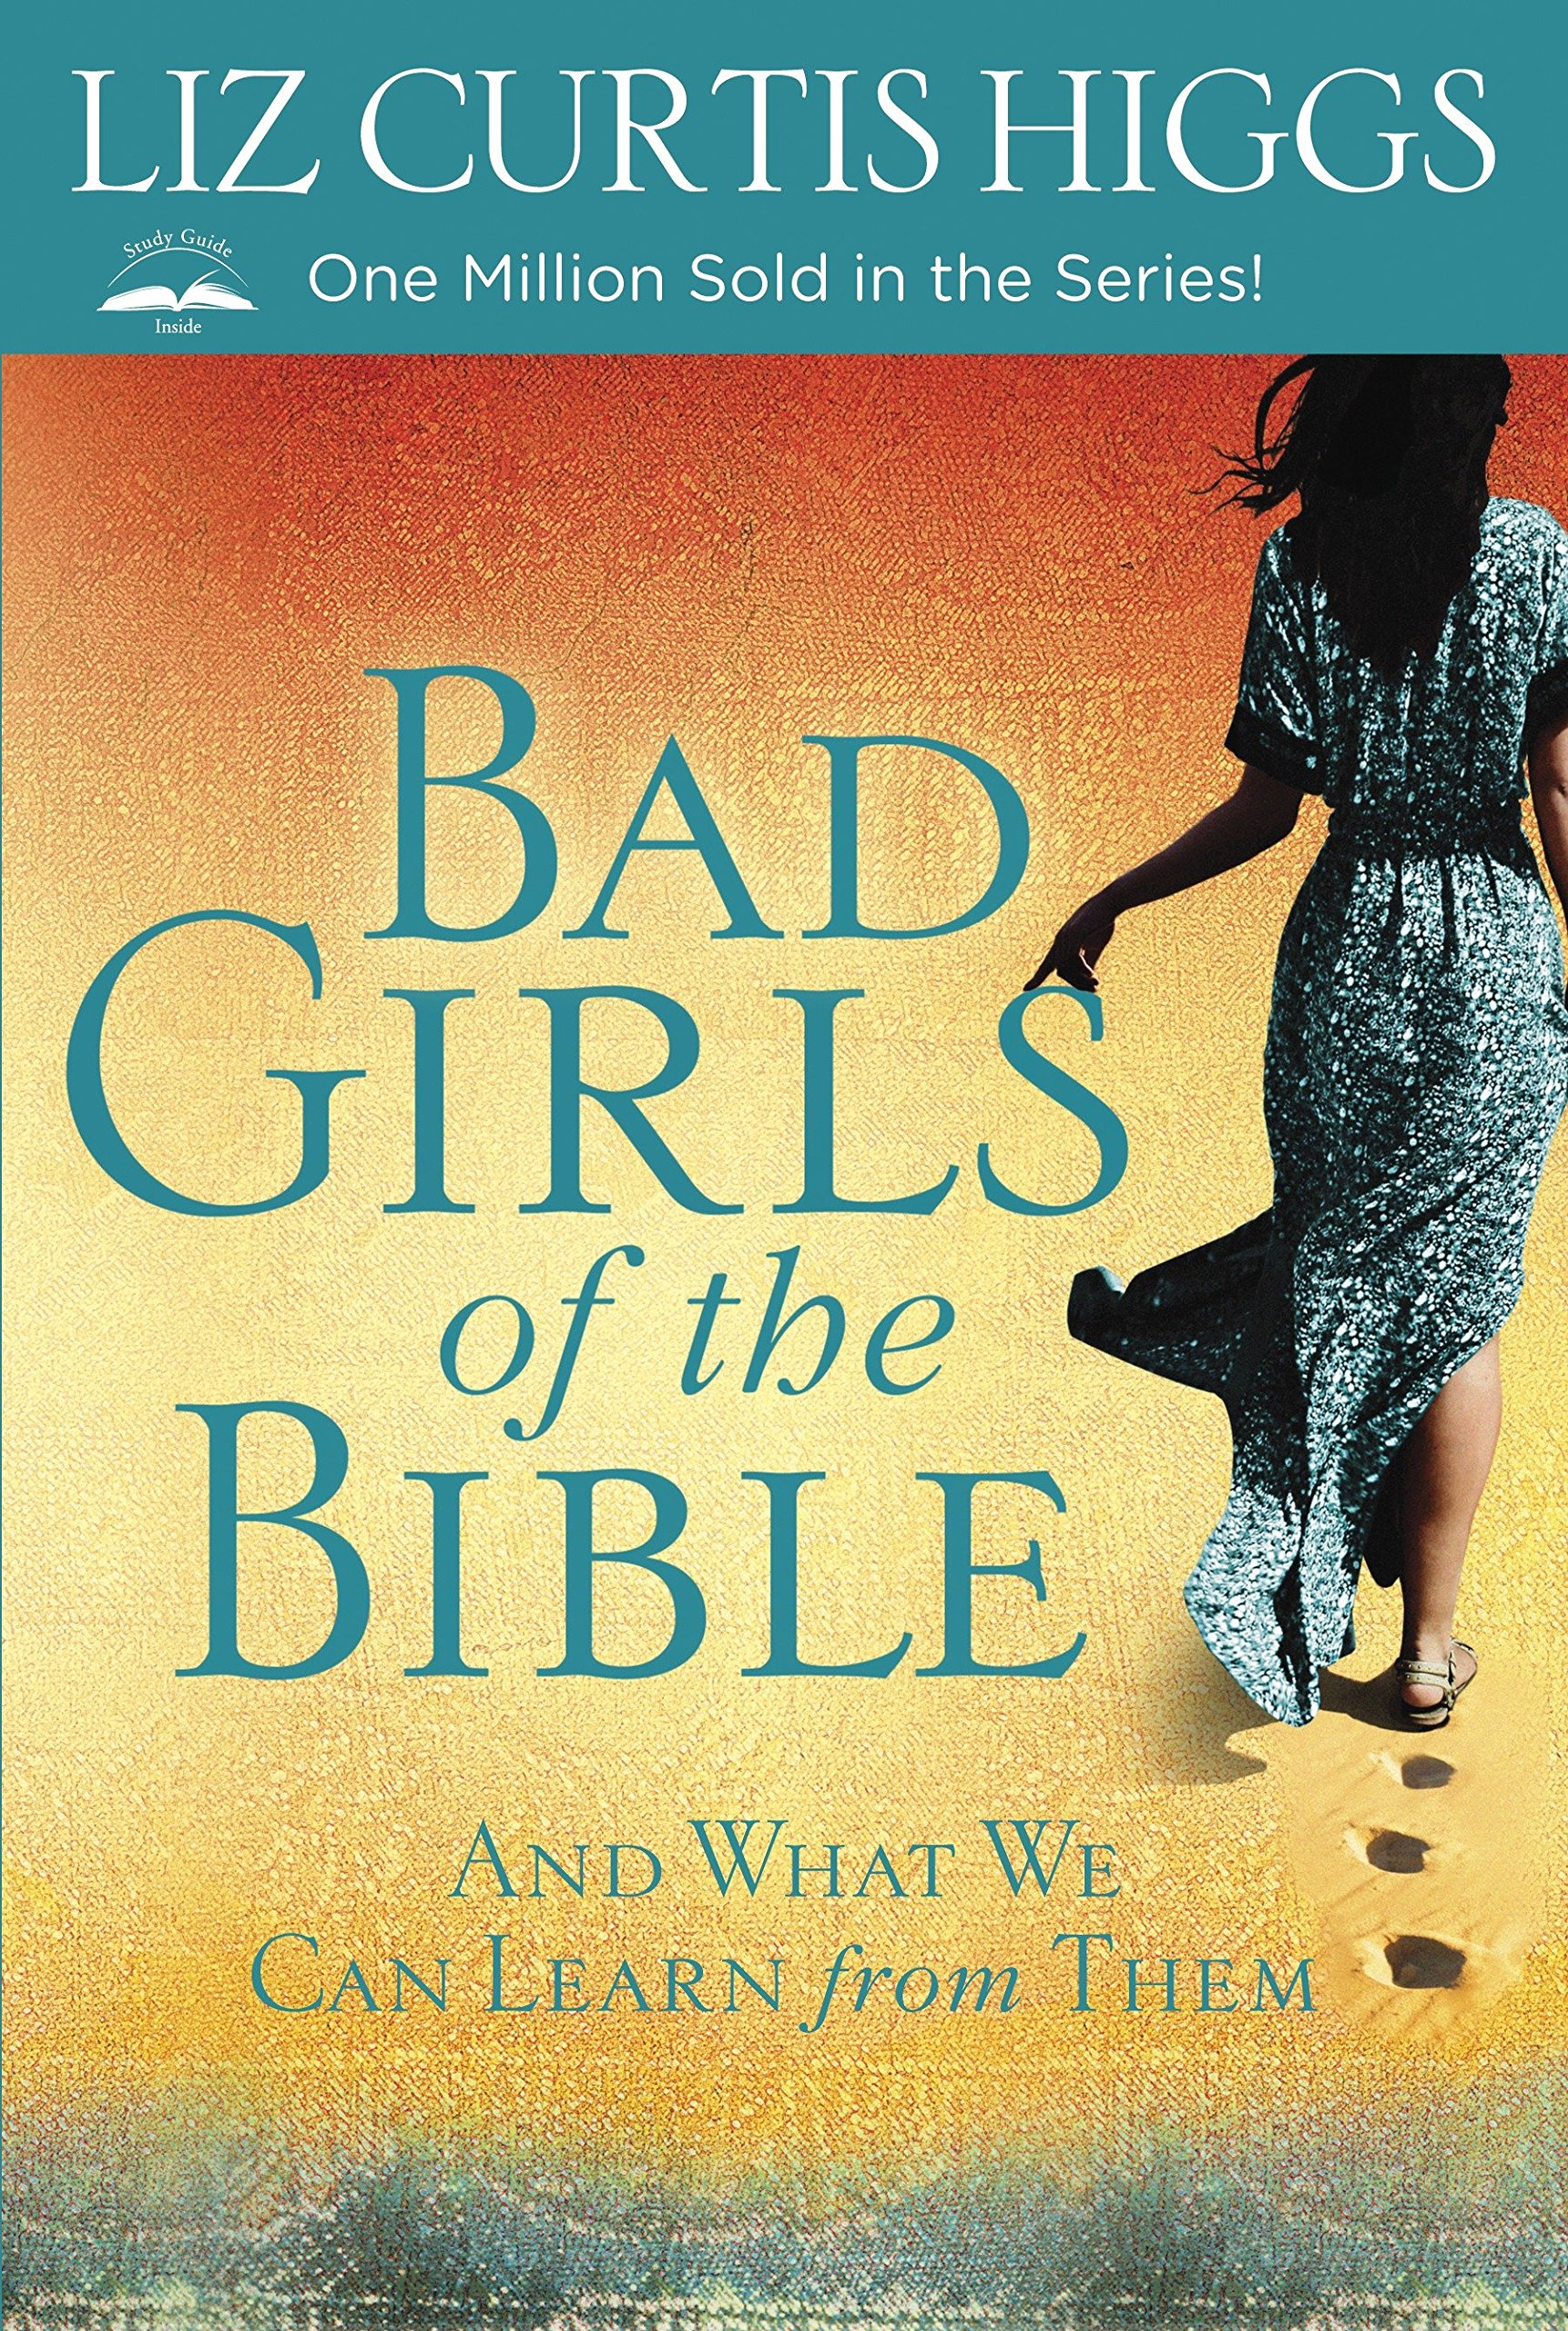 Cover of the book Bad Girls of the Bible with an image of a woman walking away leaving a trail of footprints in the sand